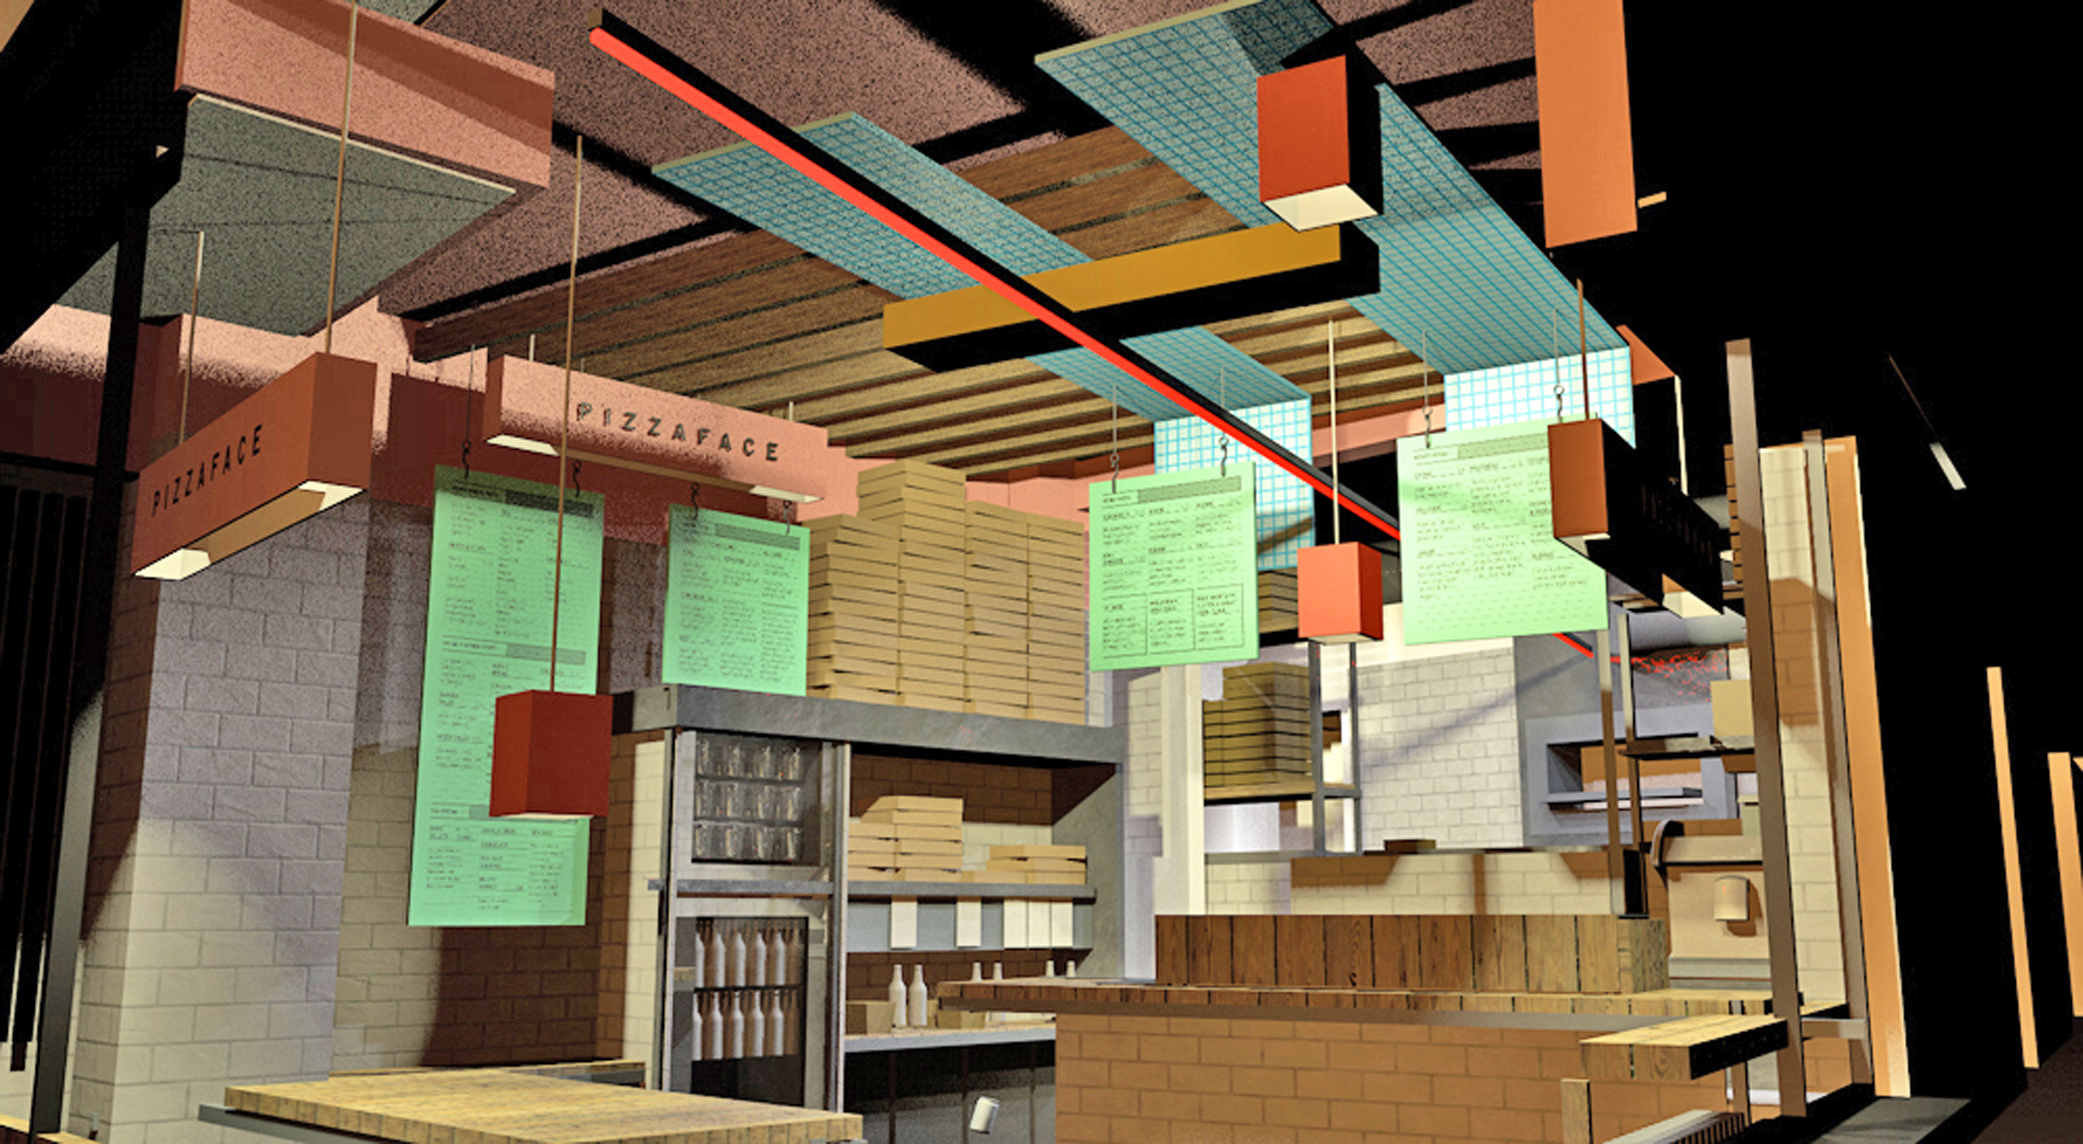 Interior Design 3d Renders Pizzaface Hove